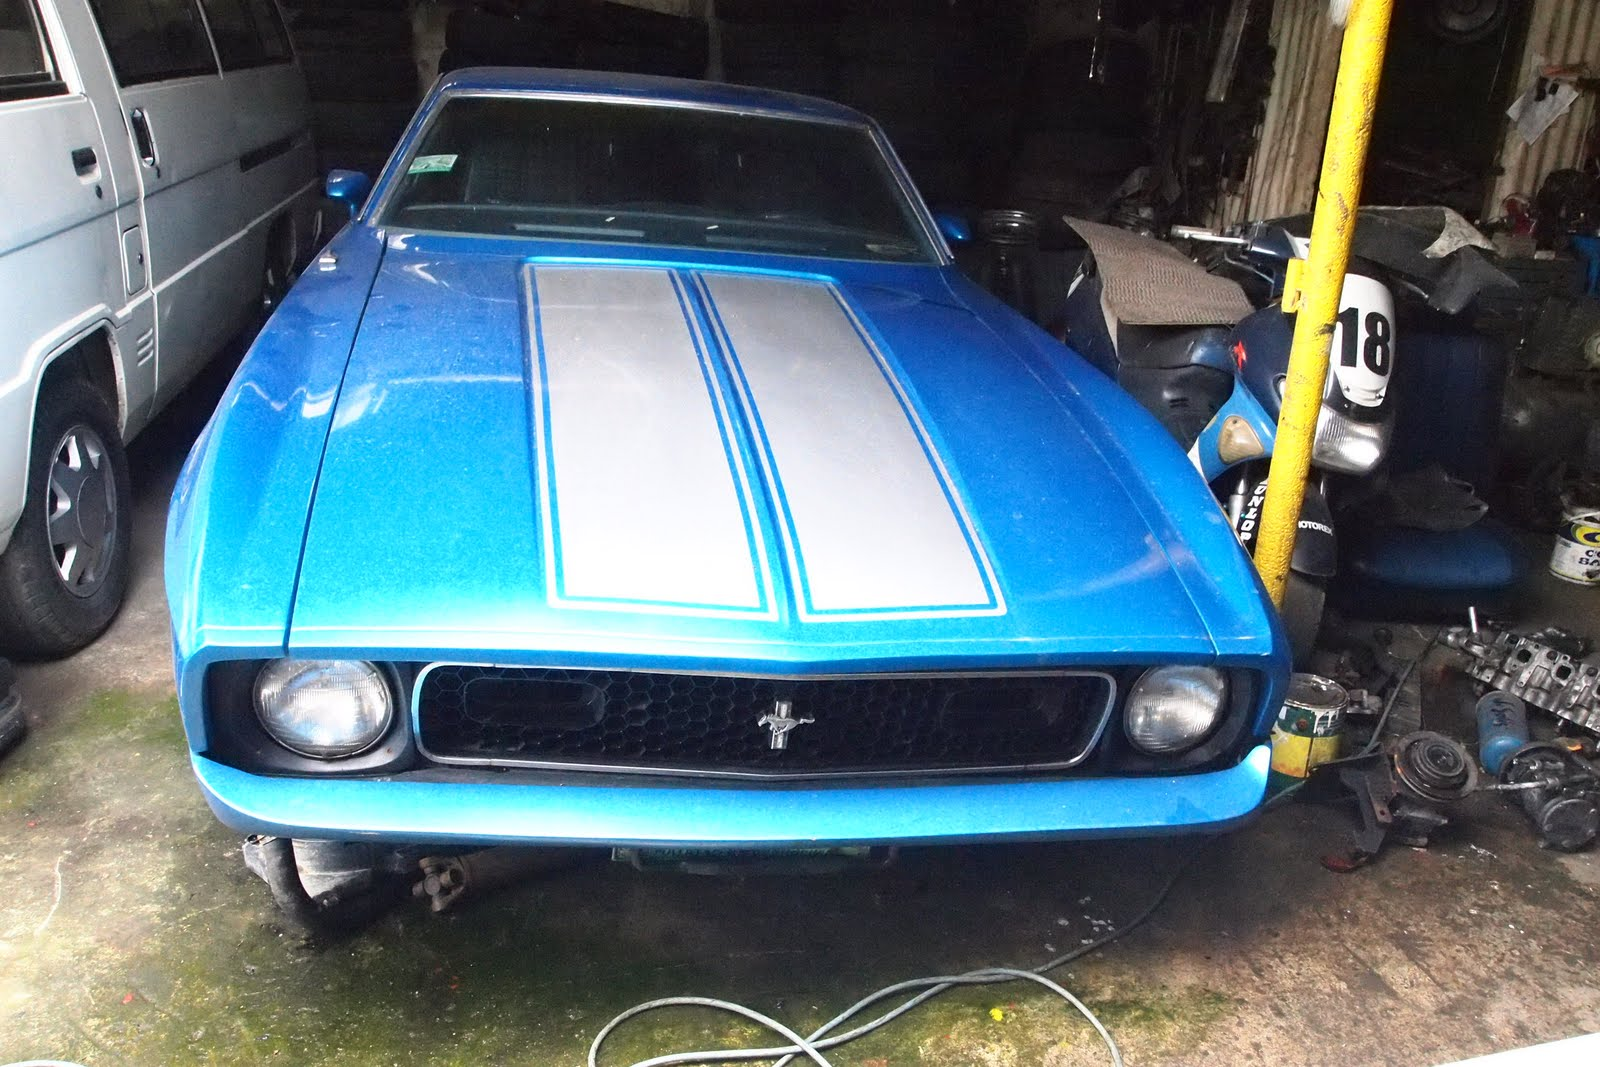 parked cars manila 1972 ford mustang mach 2. Black Bedroom Furniture Sets. Home Design Ideas